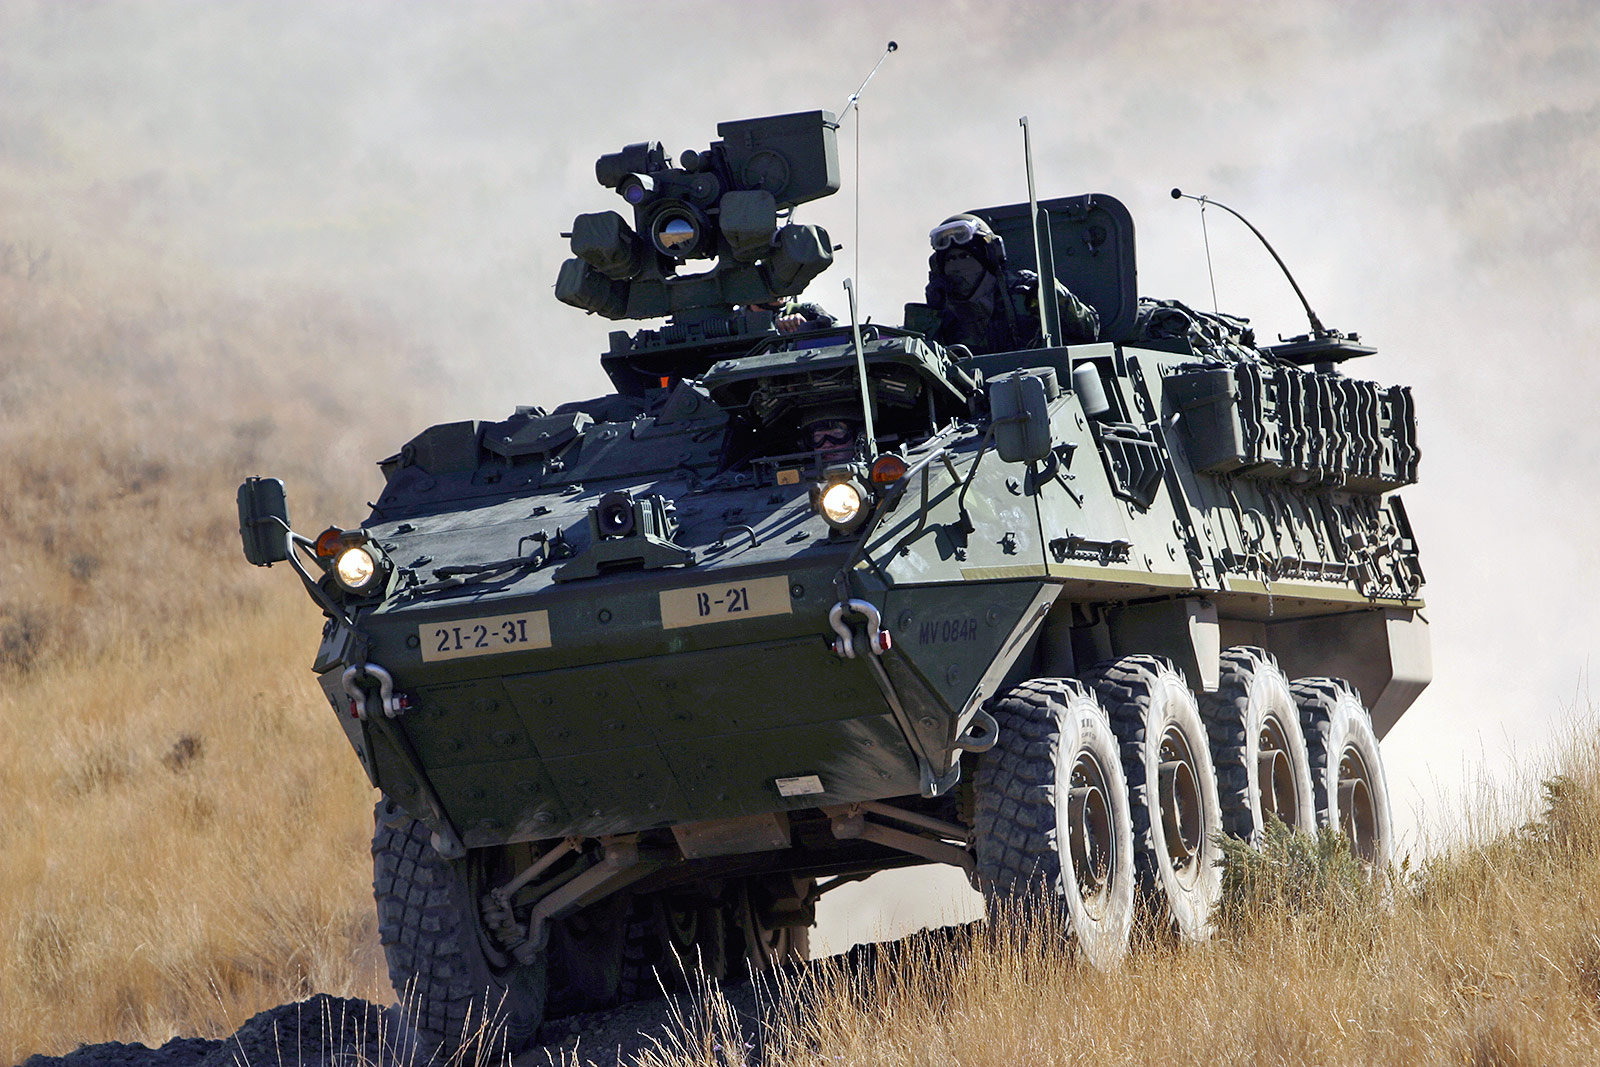 LAV Stryker Armour